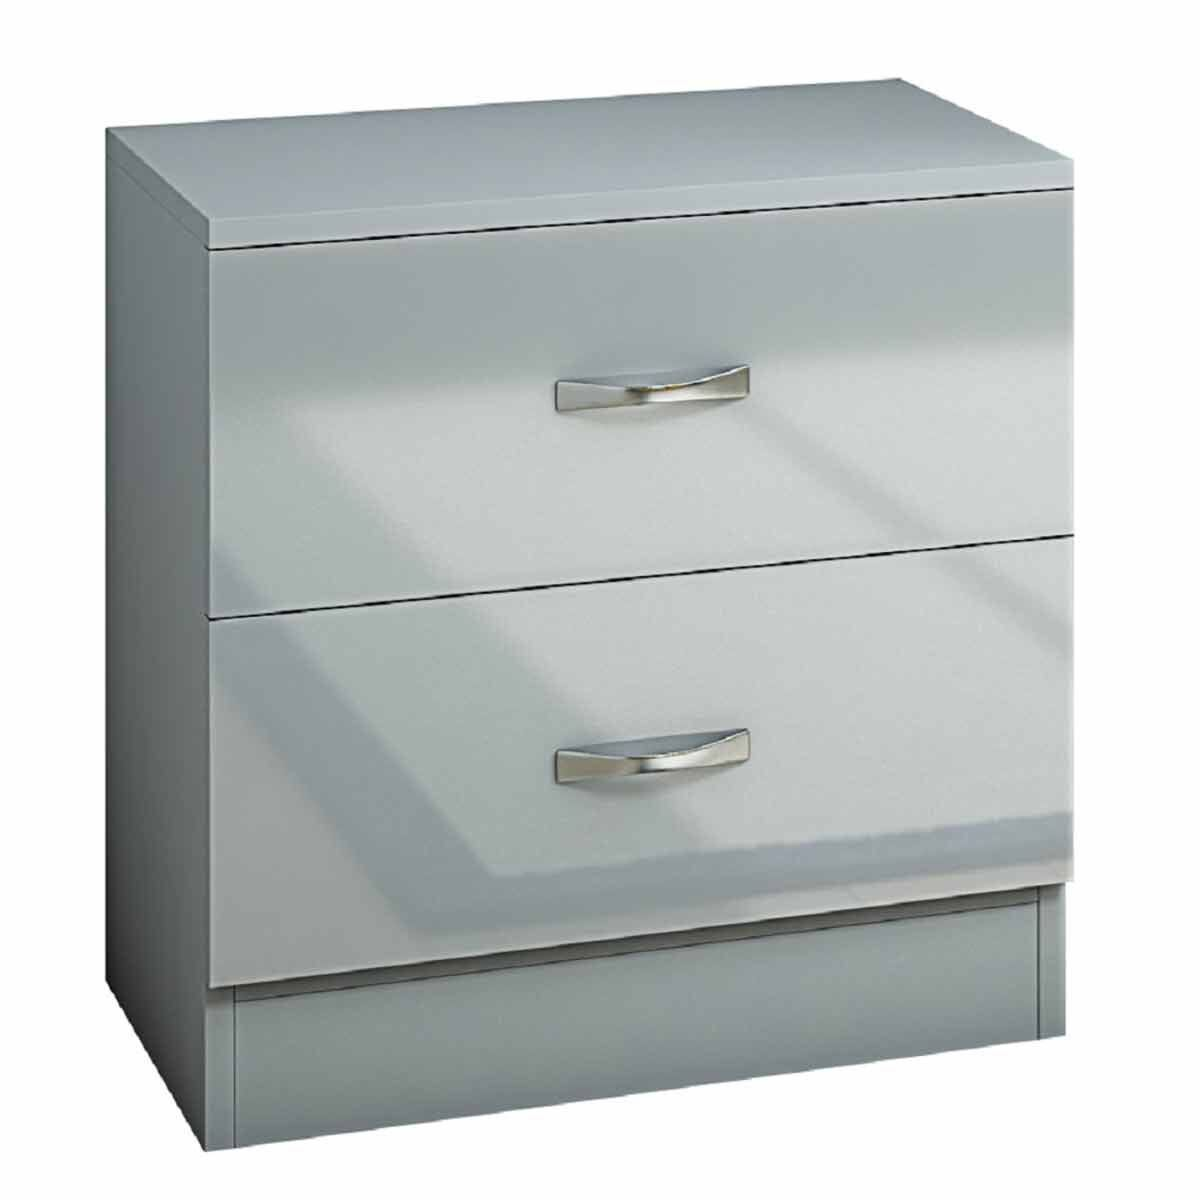 Chilton 2 Drawer Bedside Drawers with High Gloss Drawer Fronts Grey